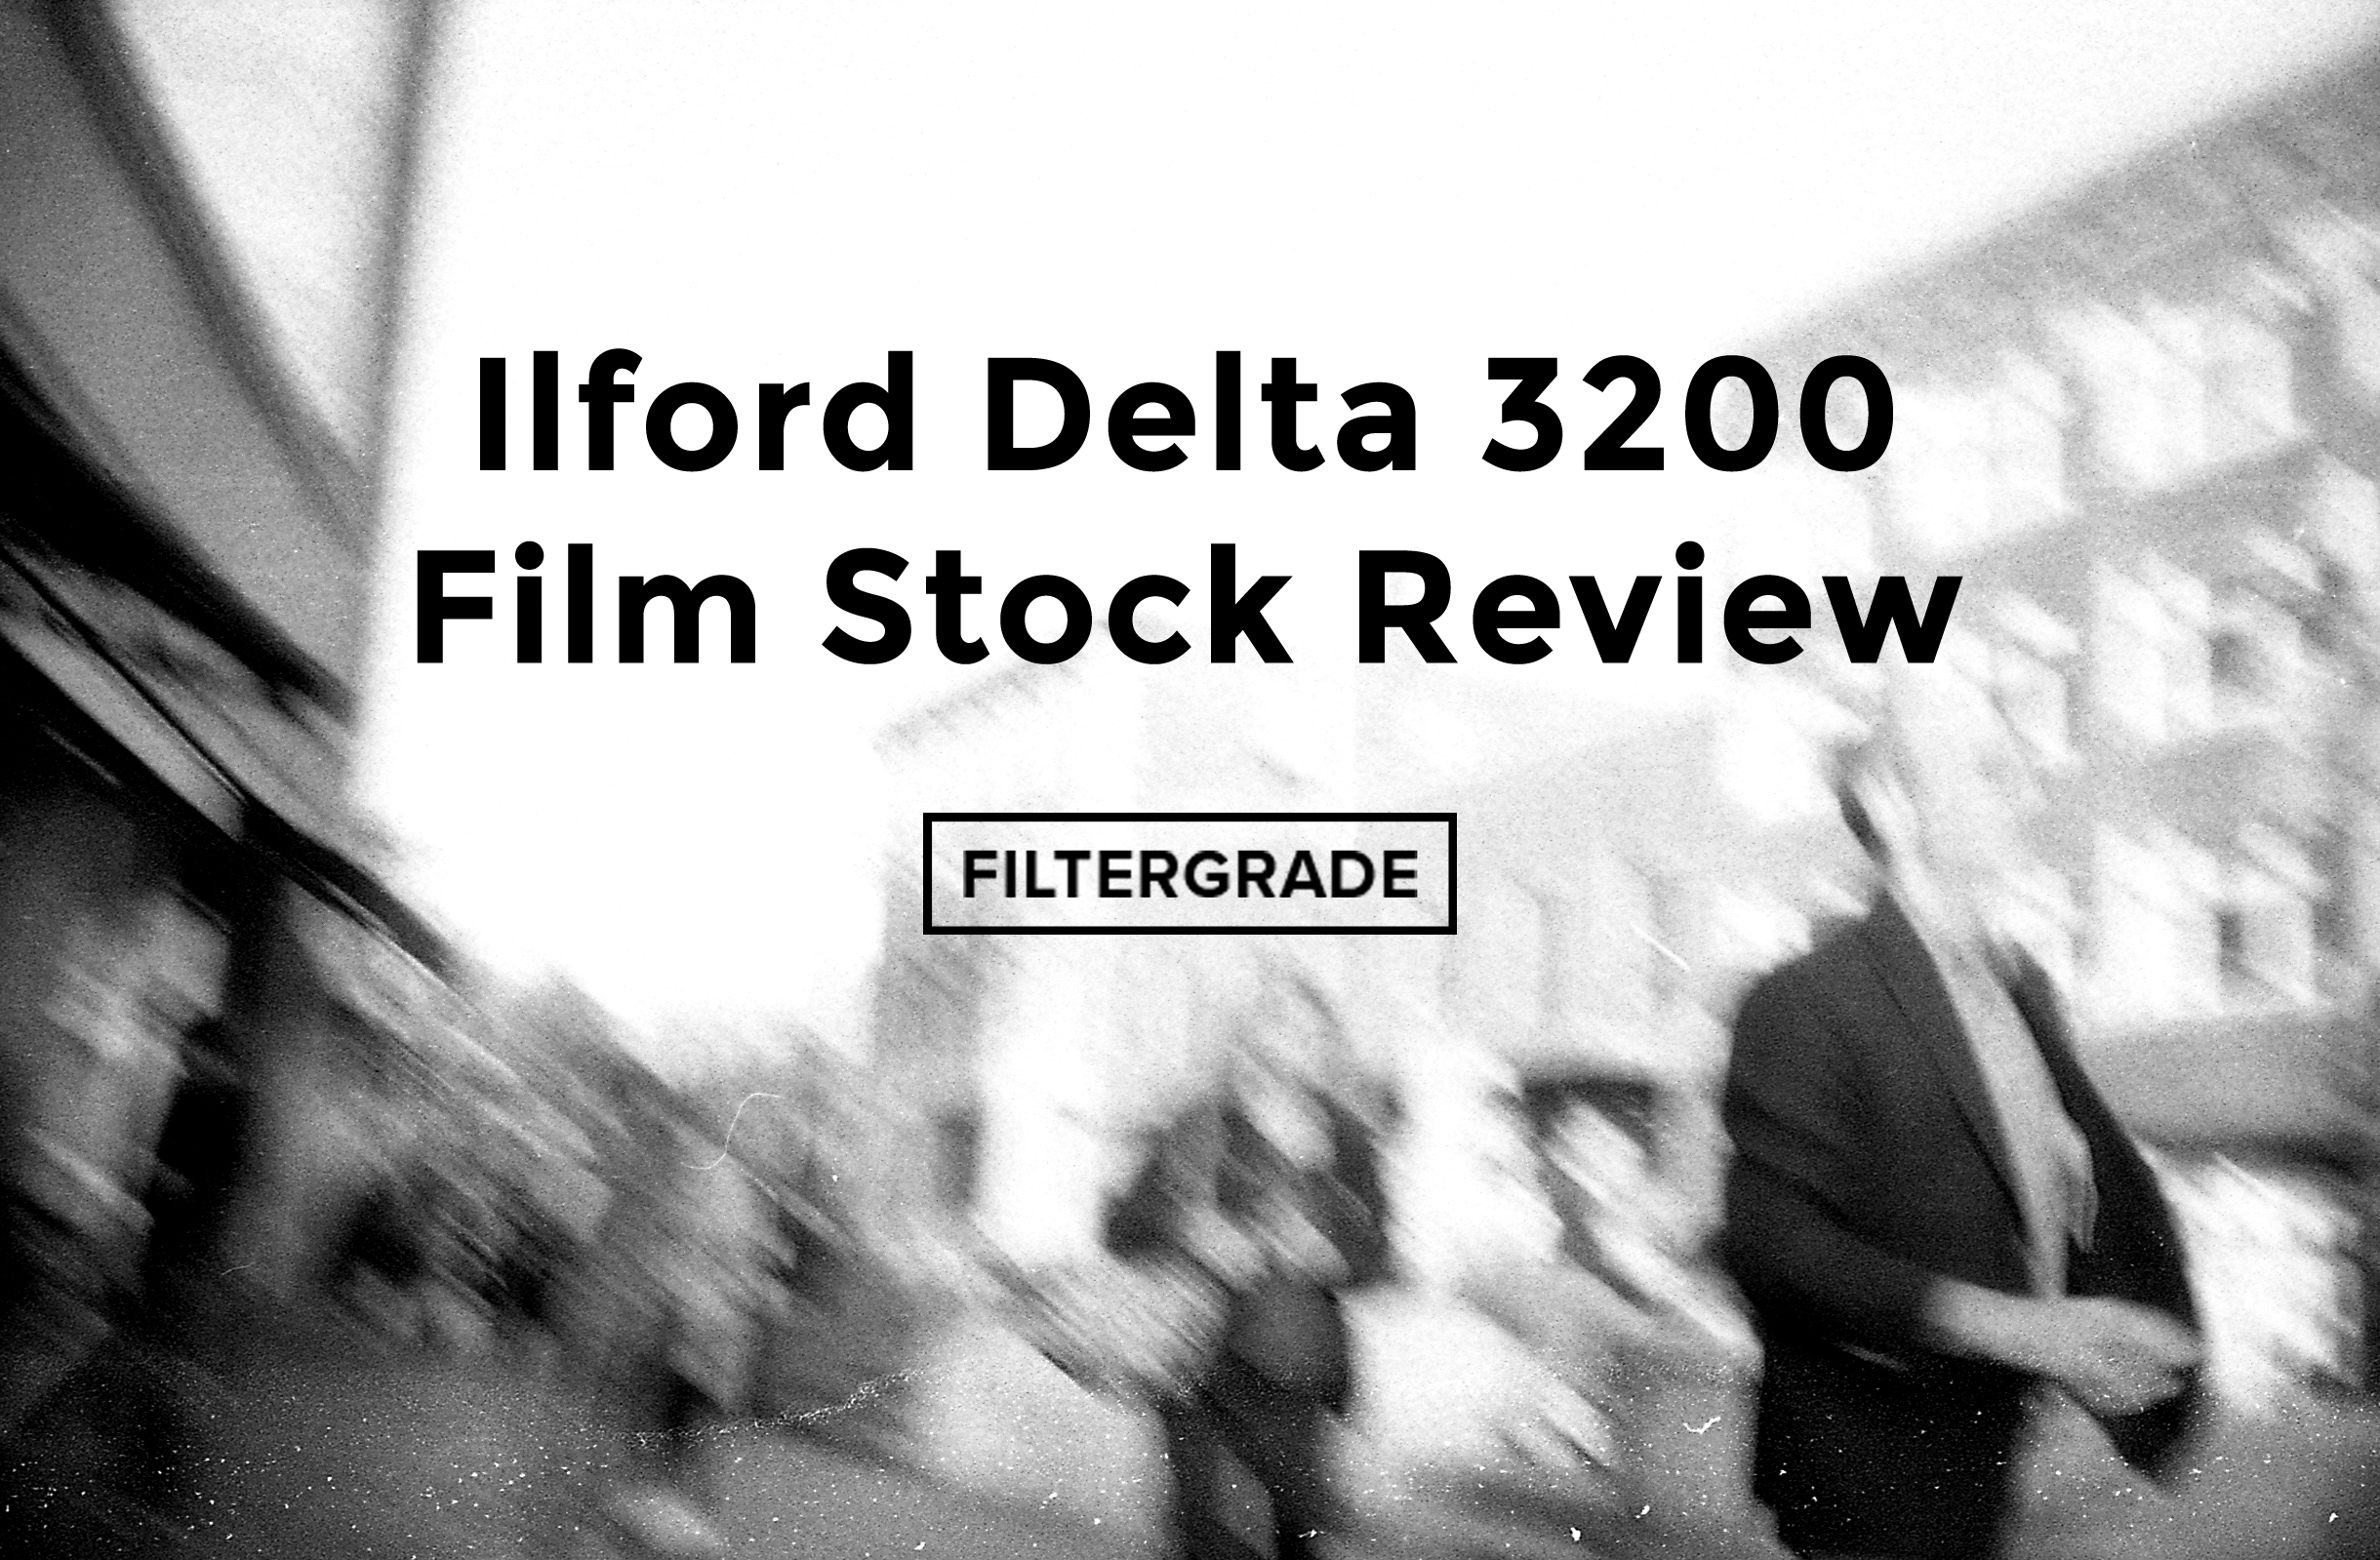 Ilford Delta 3200 Film Stock Review - FilterGrade